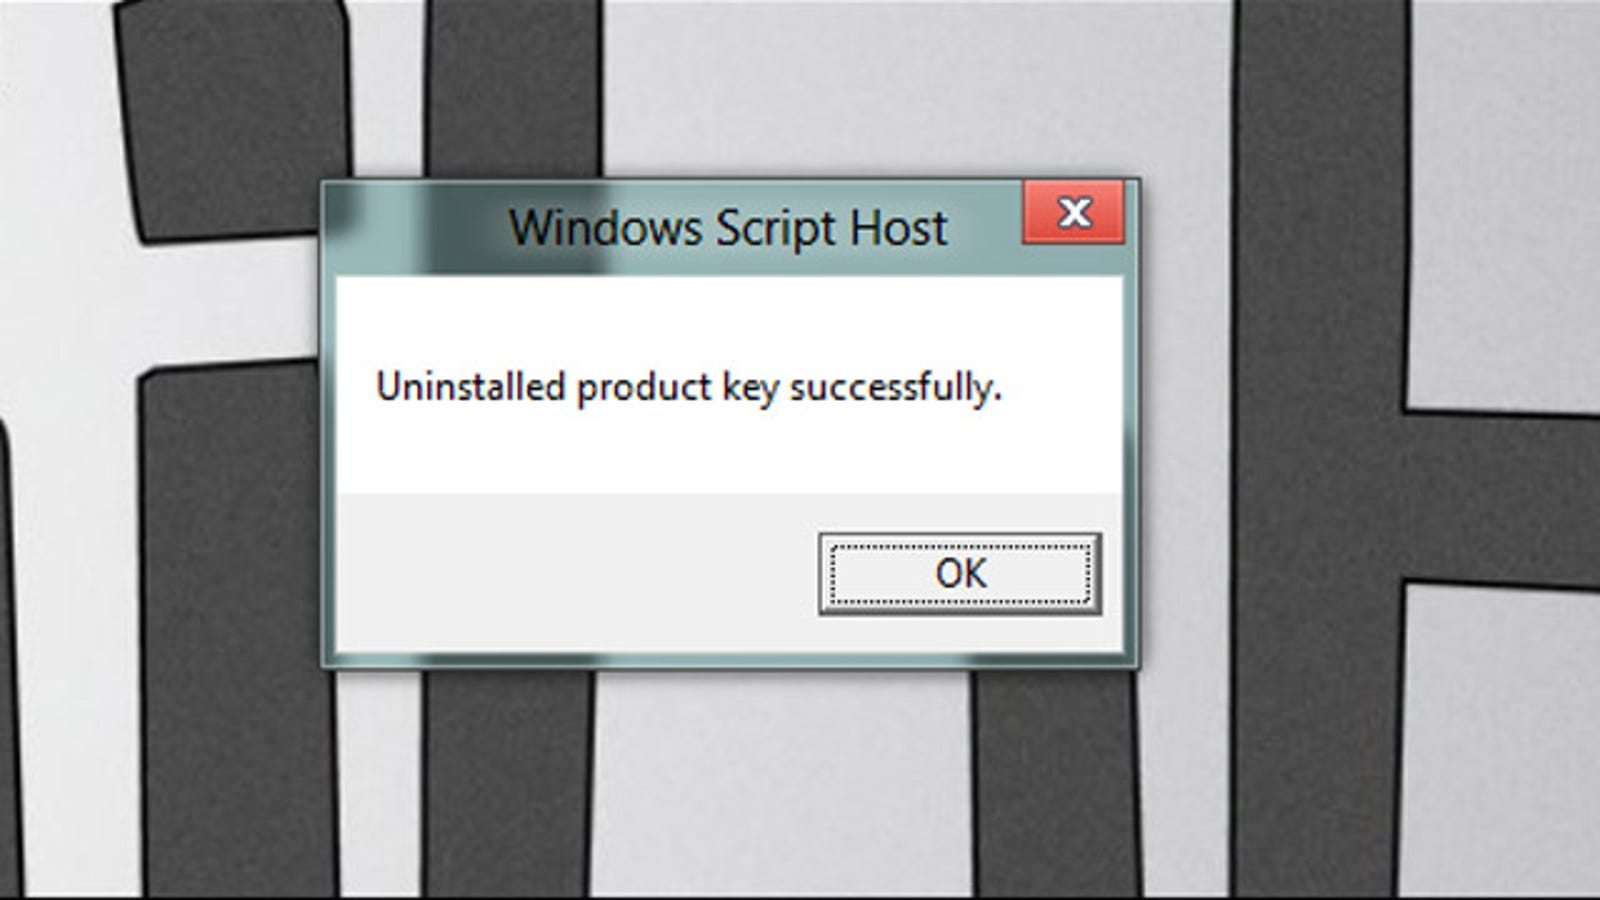 Uninstall Your Windows Product Key So You Can Use The ...